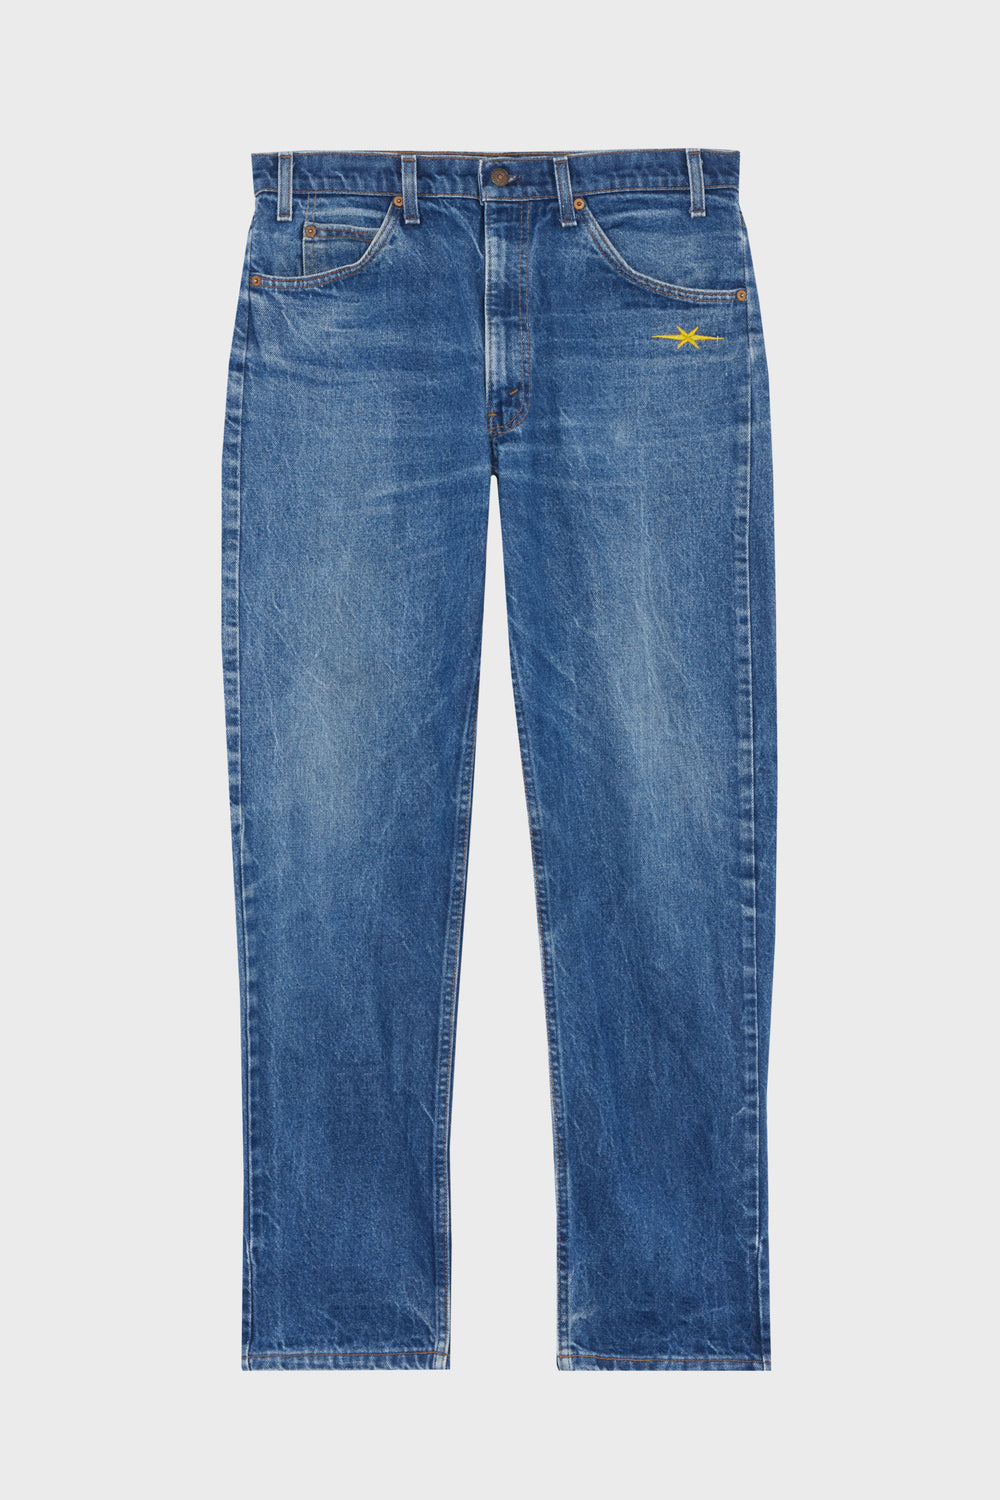 product-color-Regular fit Jeans